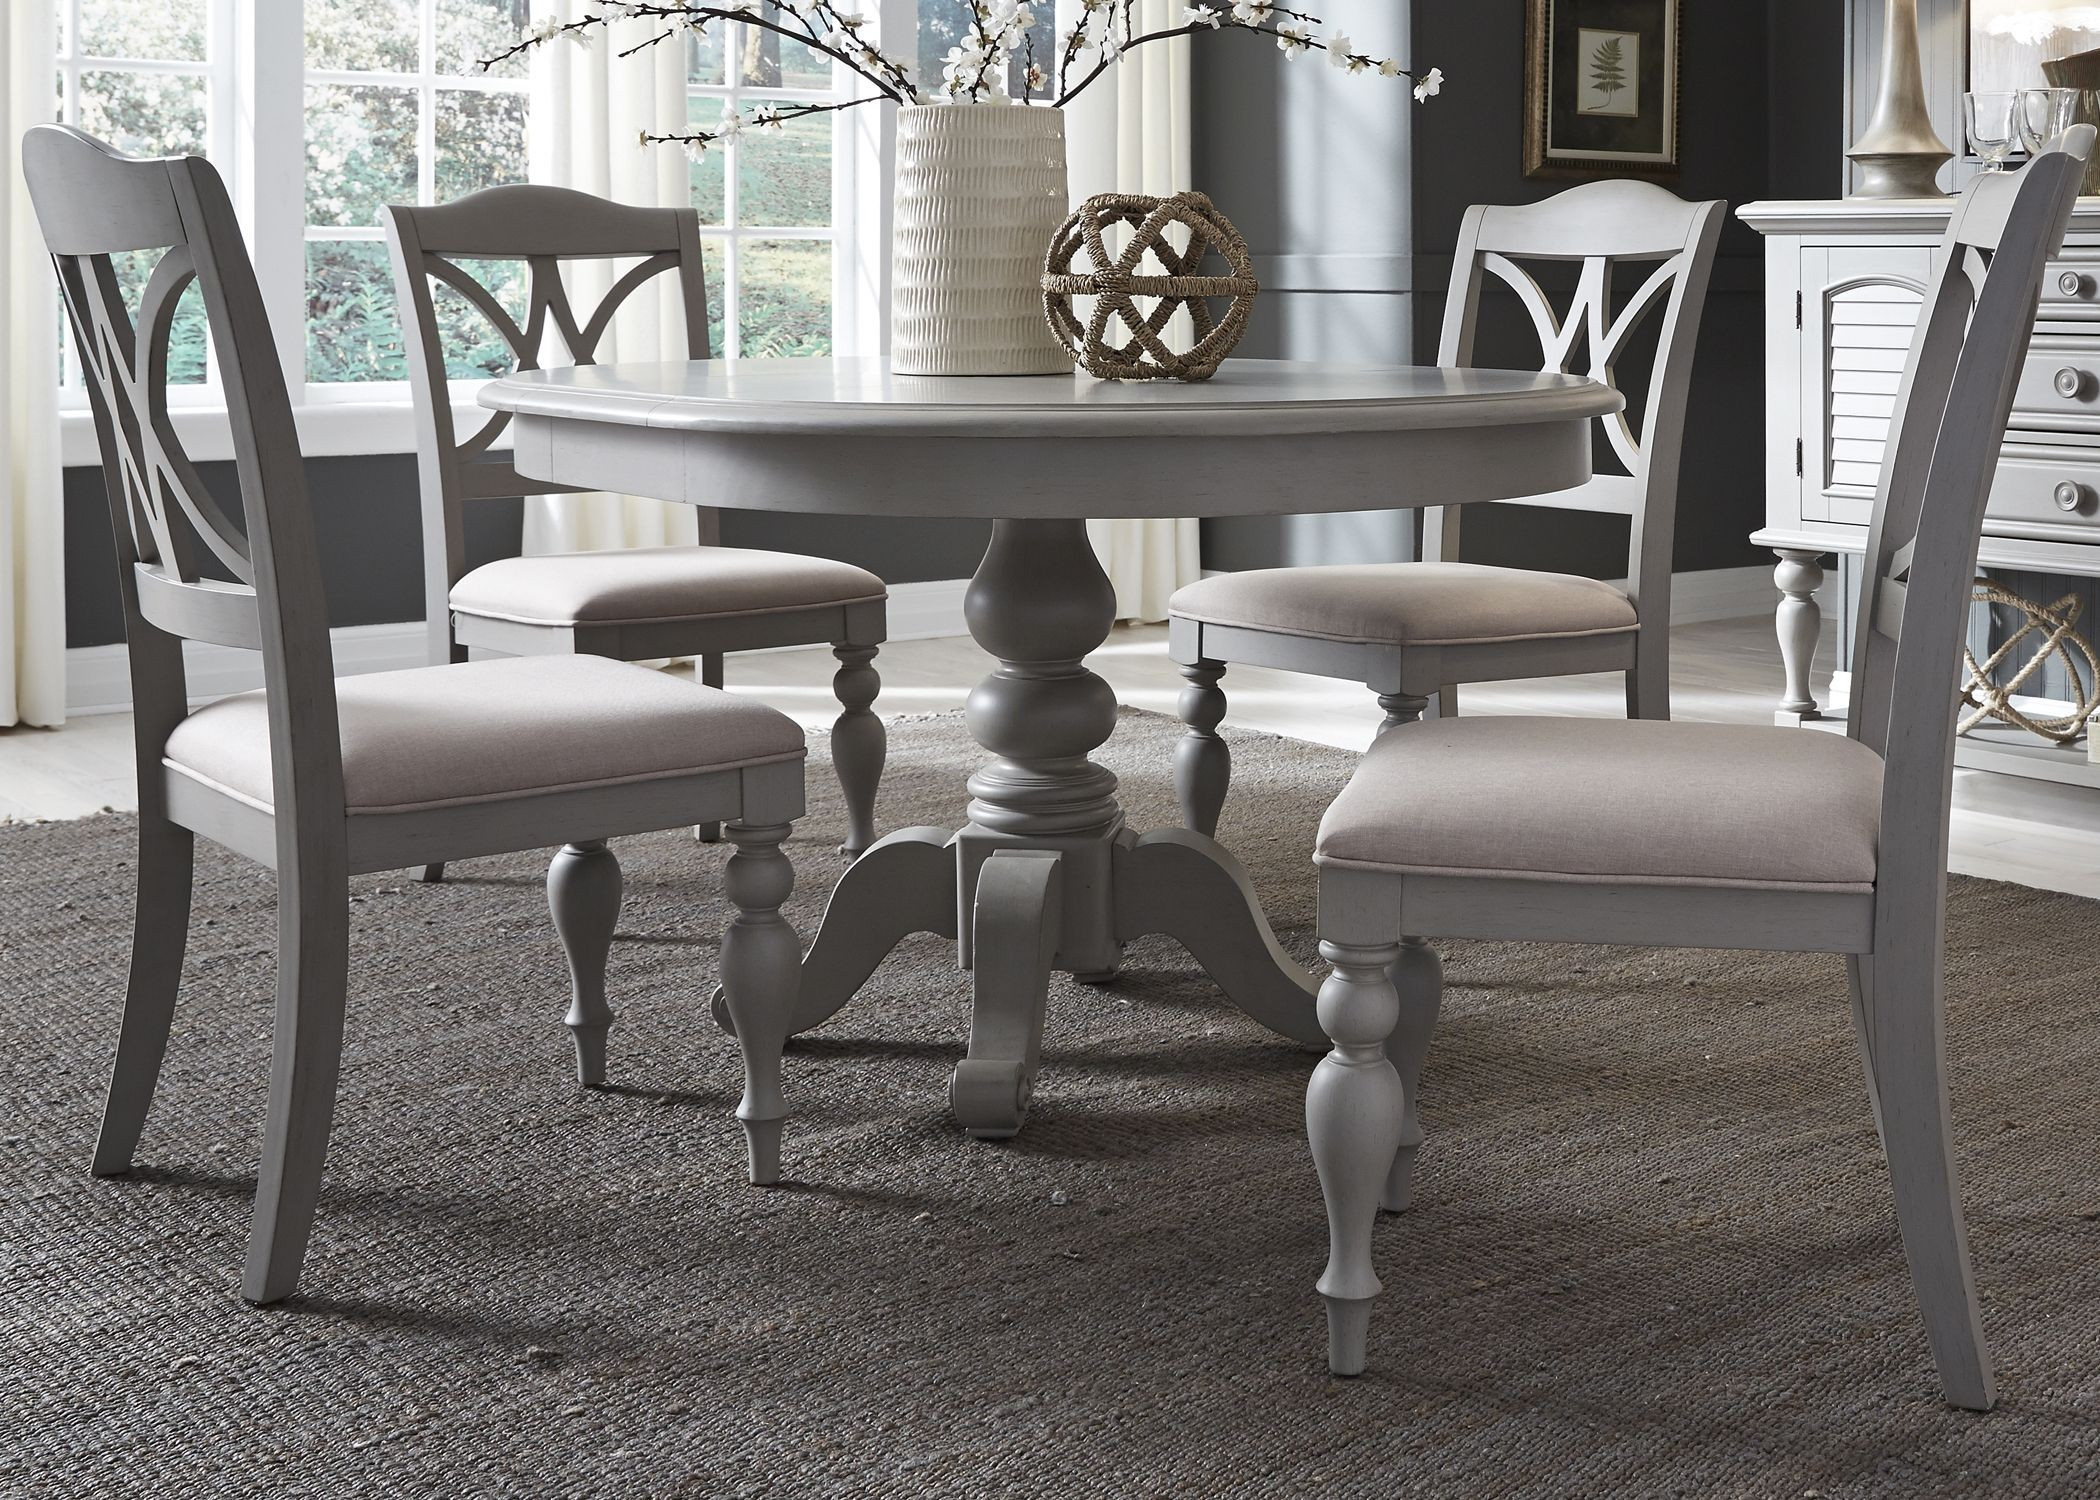 Best ideas about Gray Dining Table . Save or Pin Summer House Dove Grey Round Dining Room Set from Liberty Now.